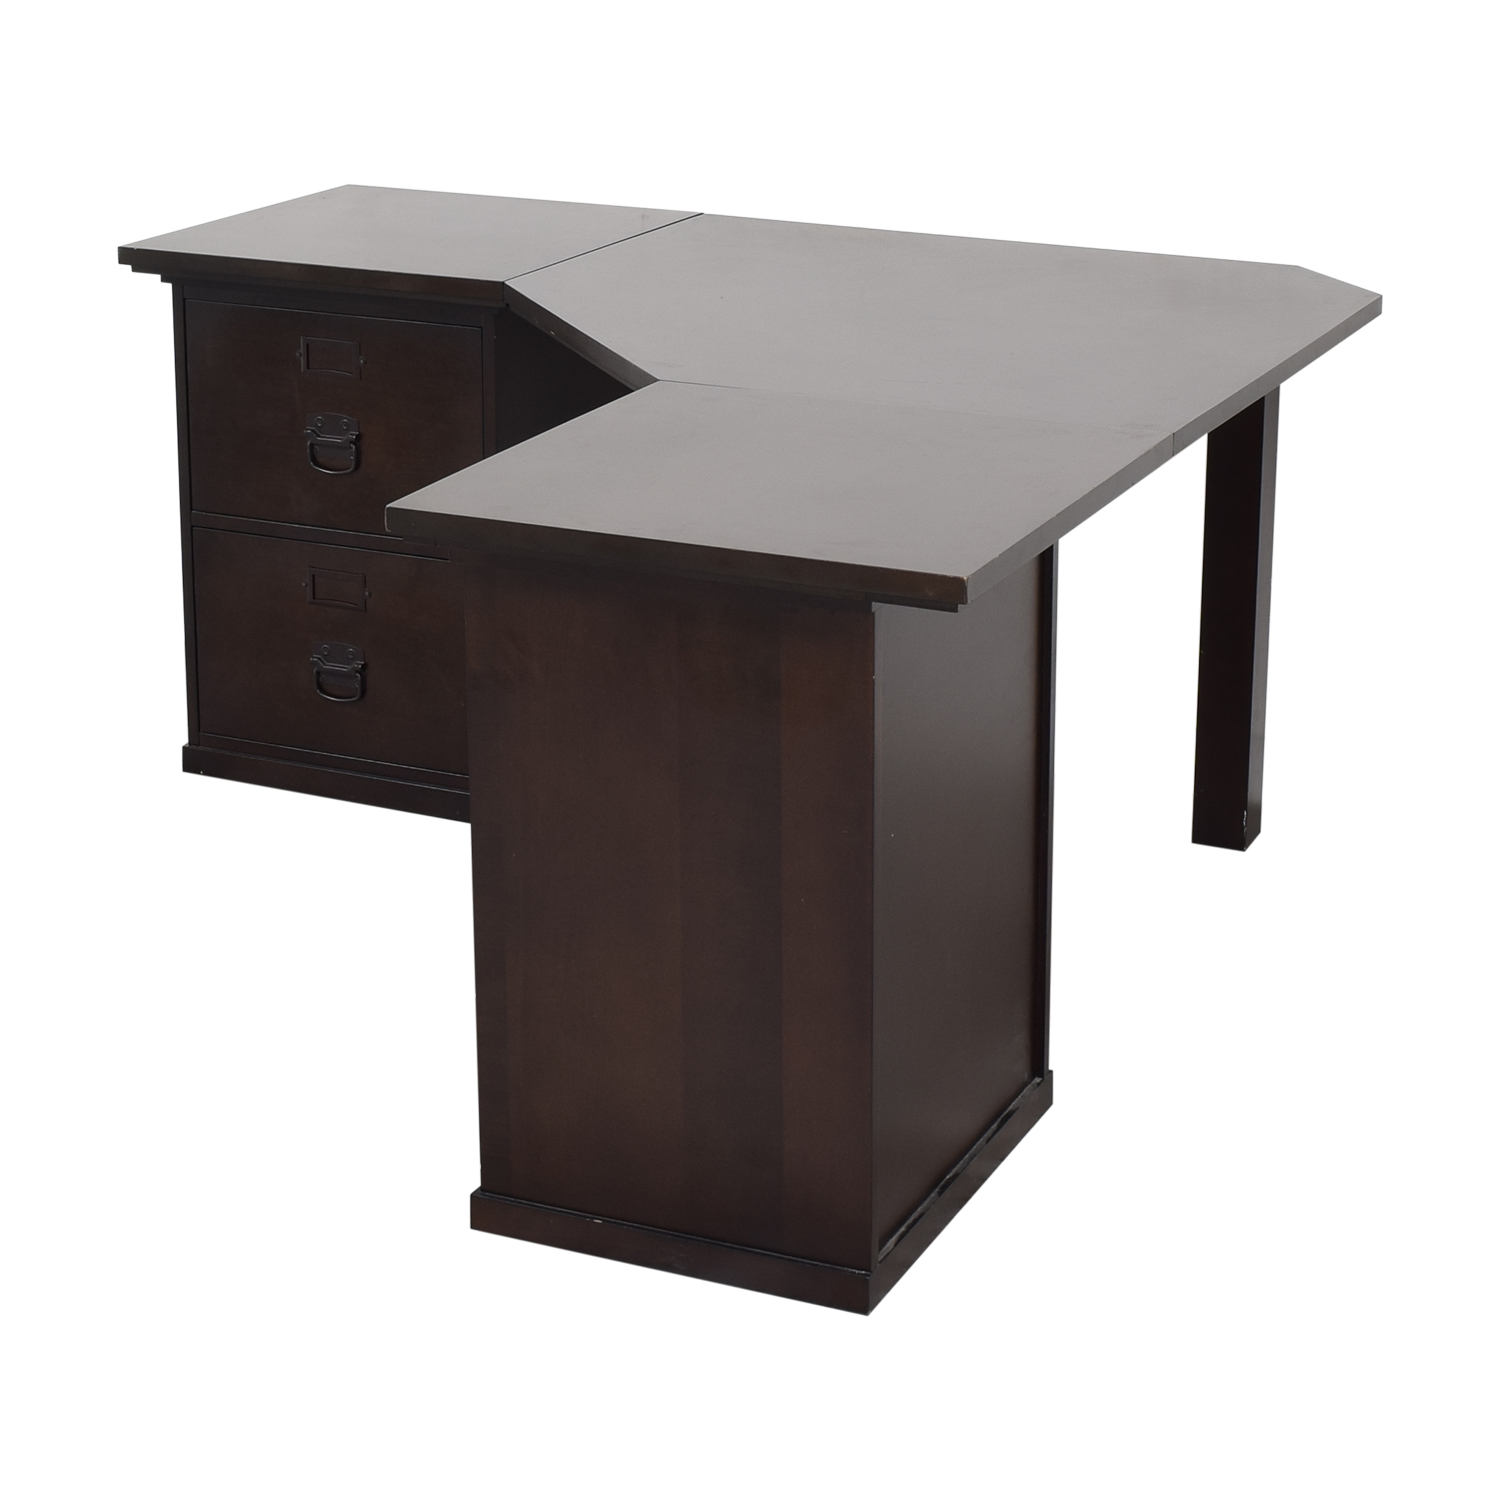 West Elm West Elm Corner Desk second hand